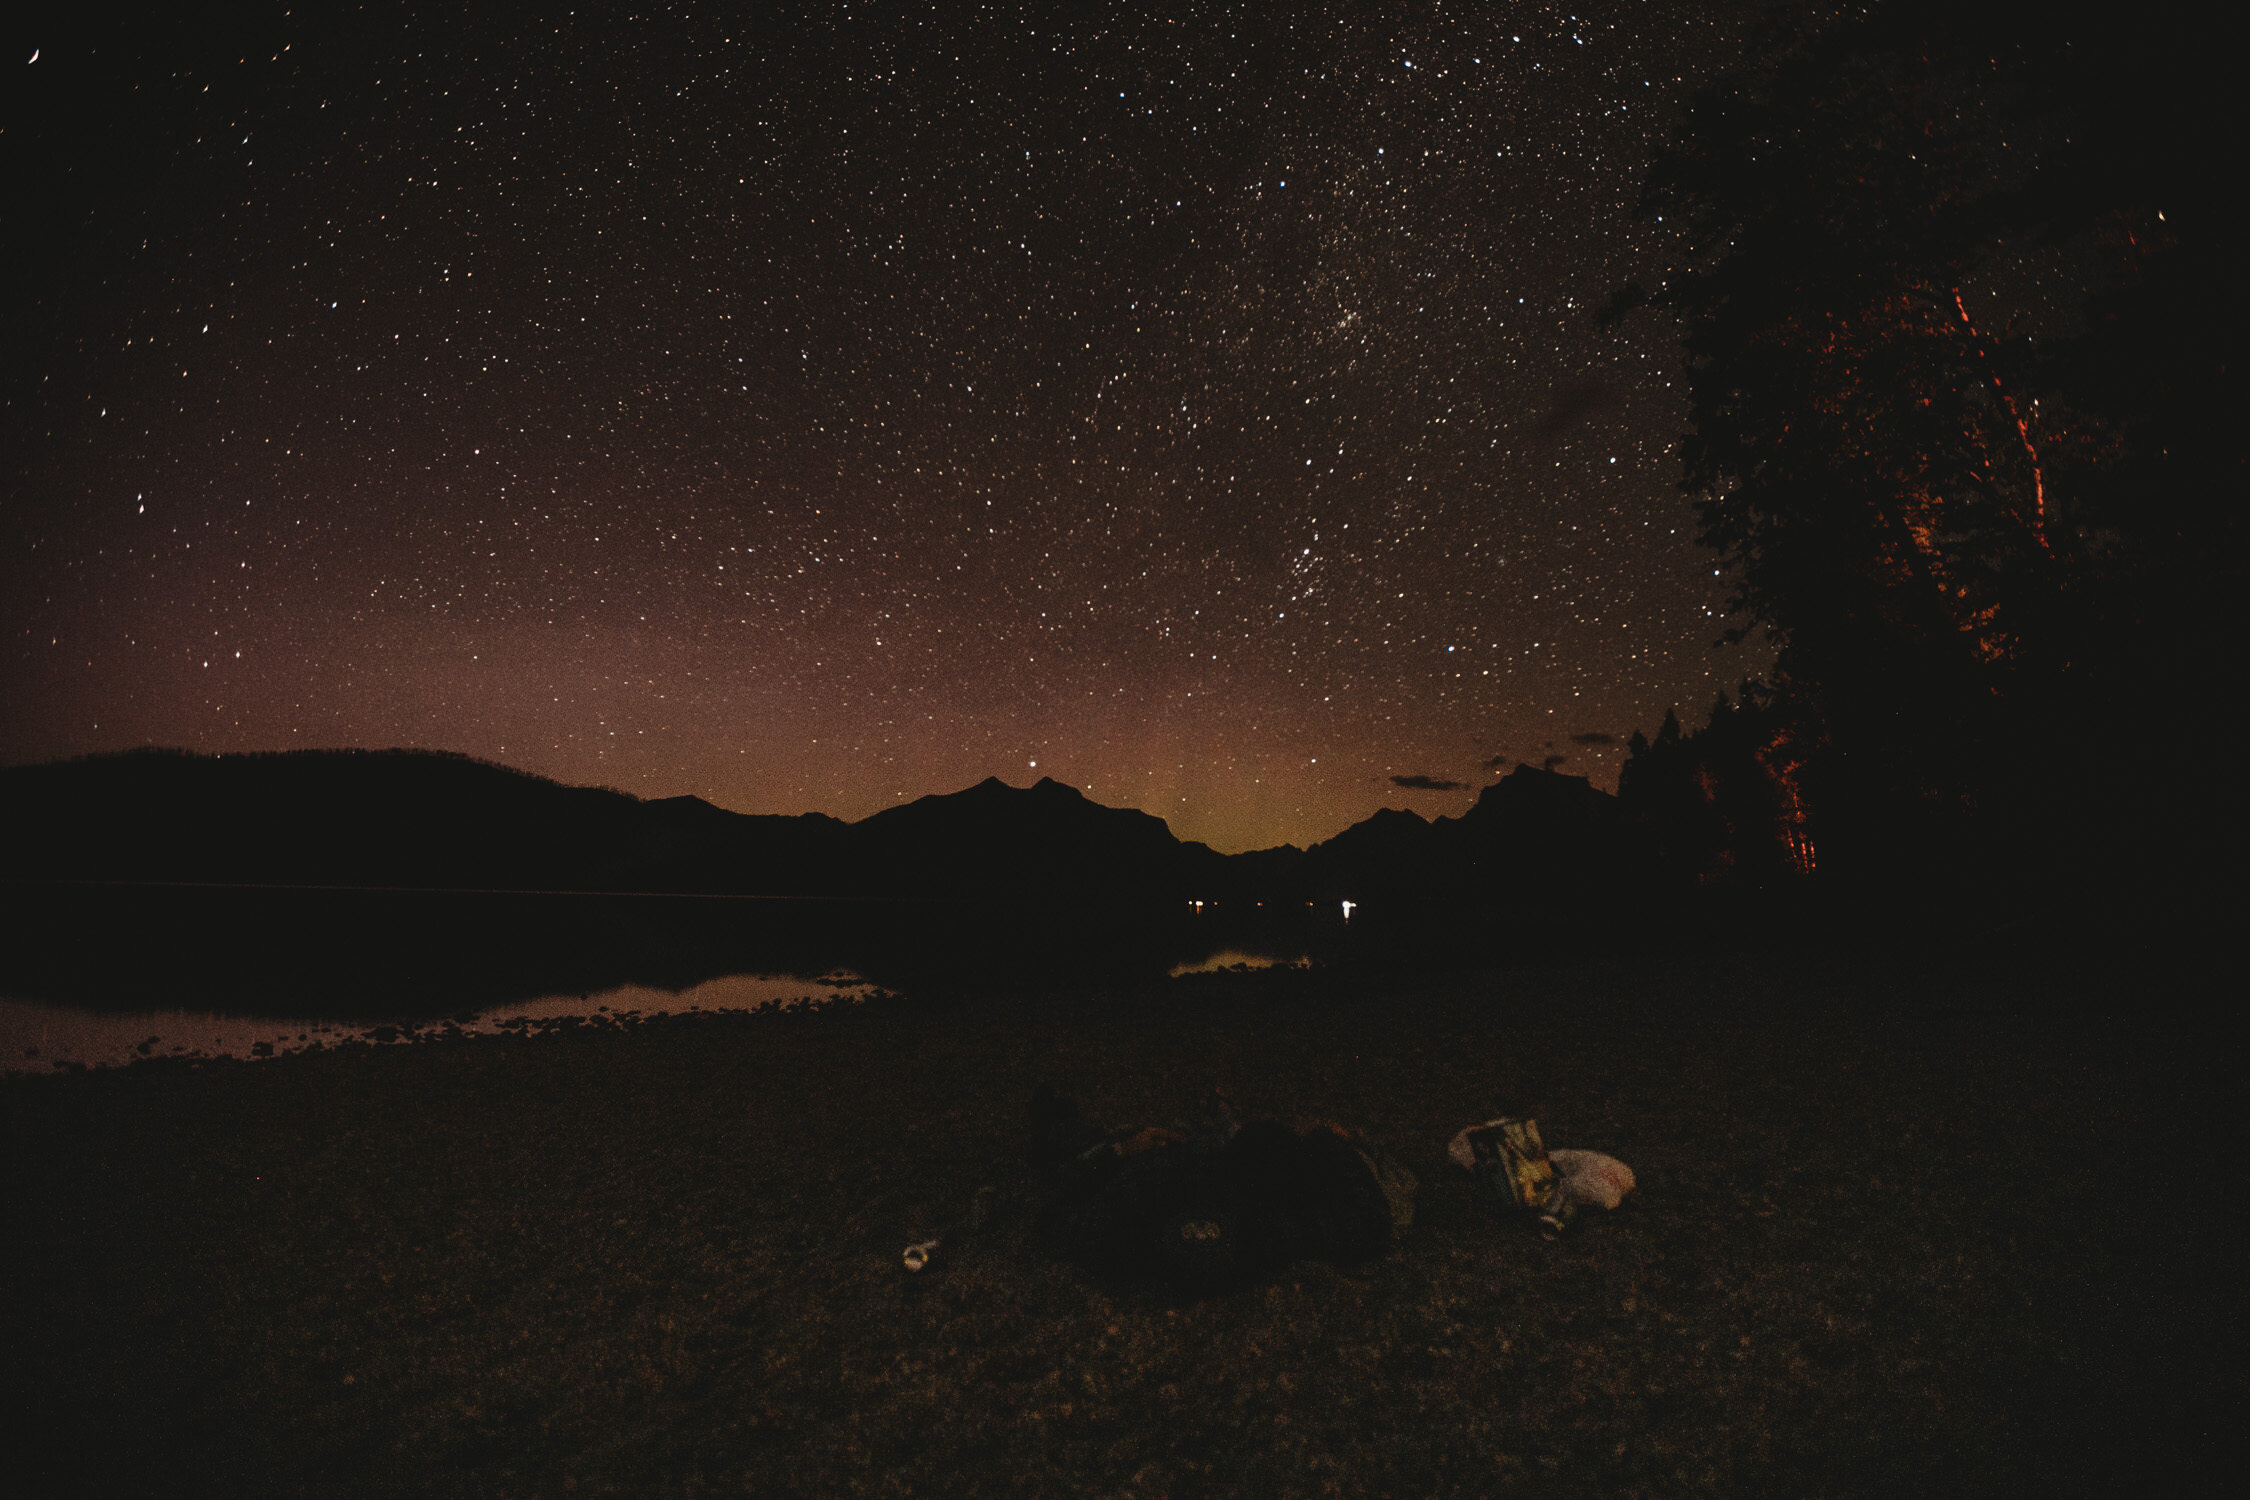 Ali and Tyler-Moss laying together under the stars at the end of their elopement day.